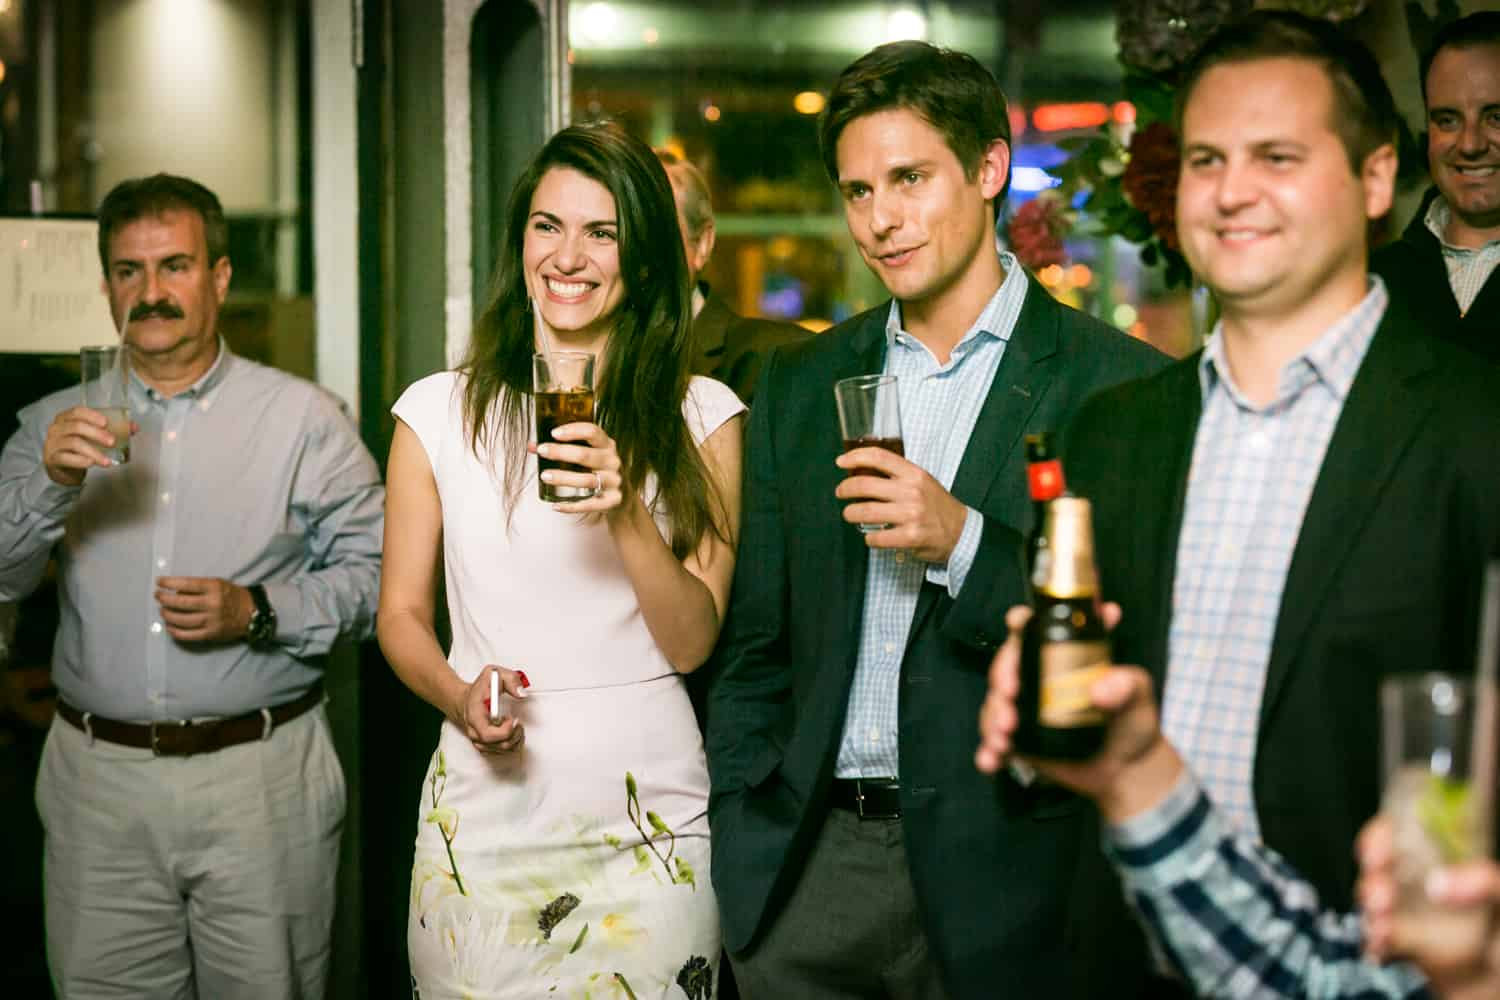 Couple and guests holding drinks for an article on rehearsal dinner tips